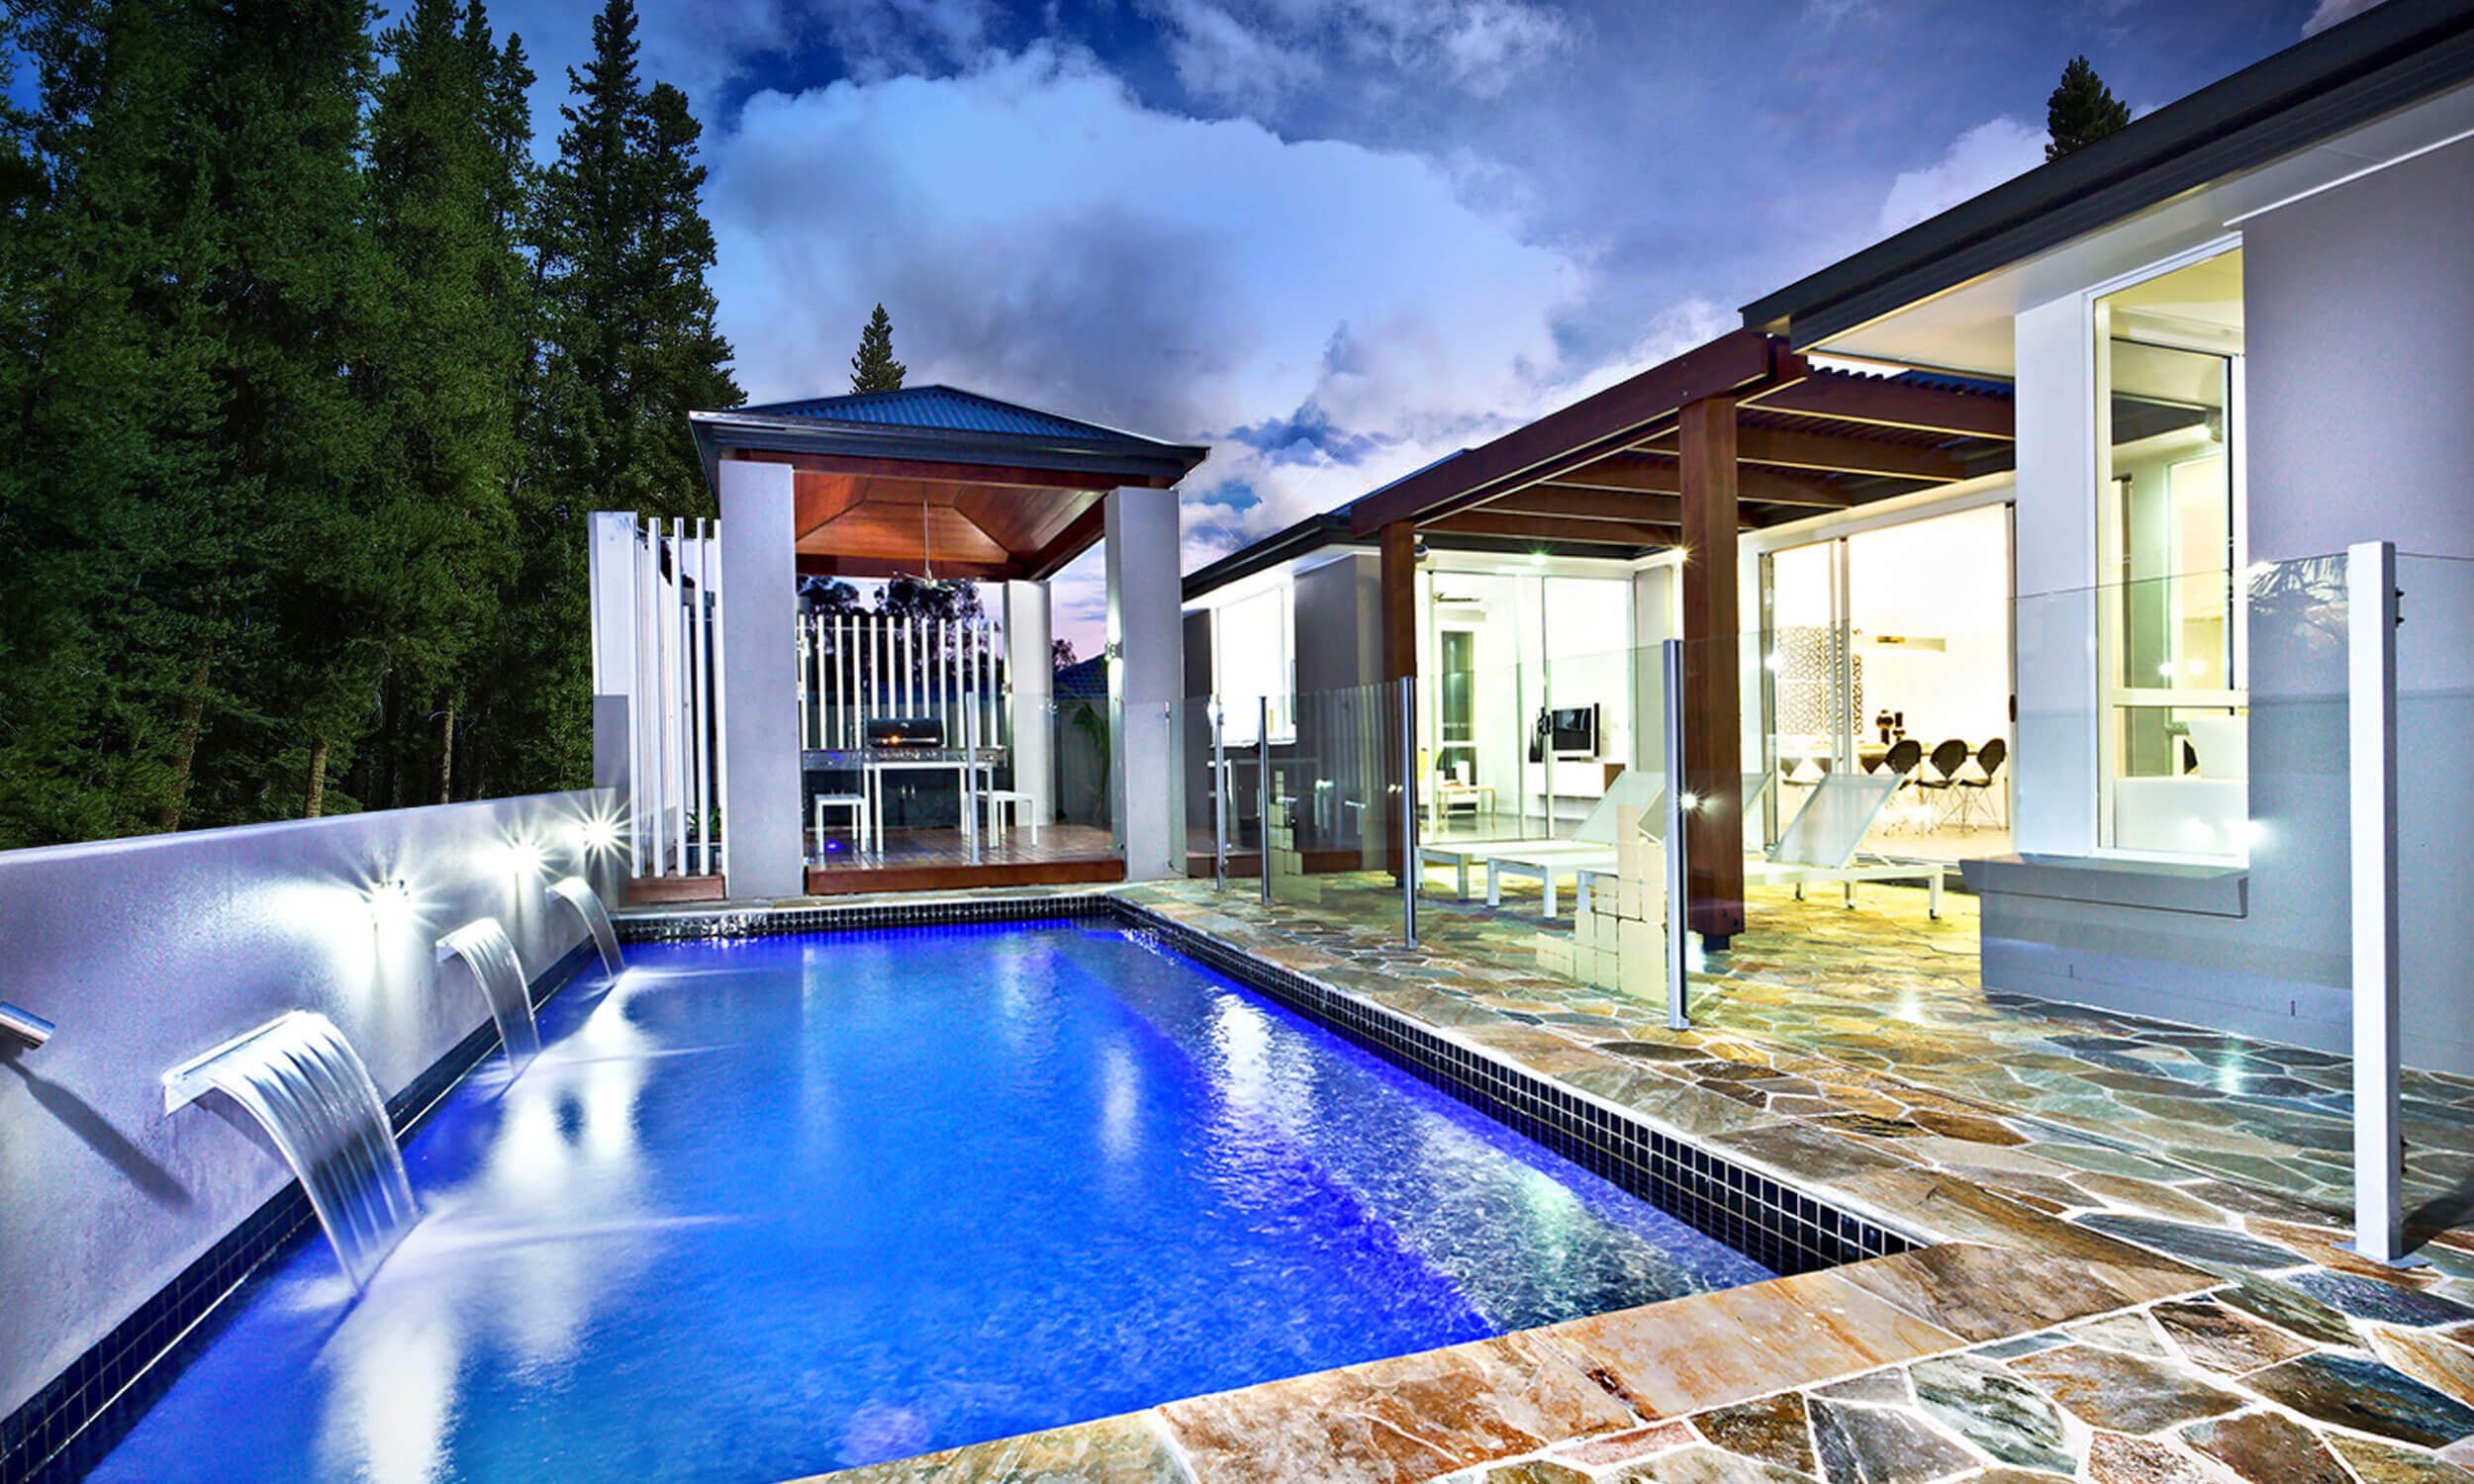 A beautiful, modern pool designed by Edgewater Pools.